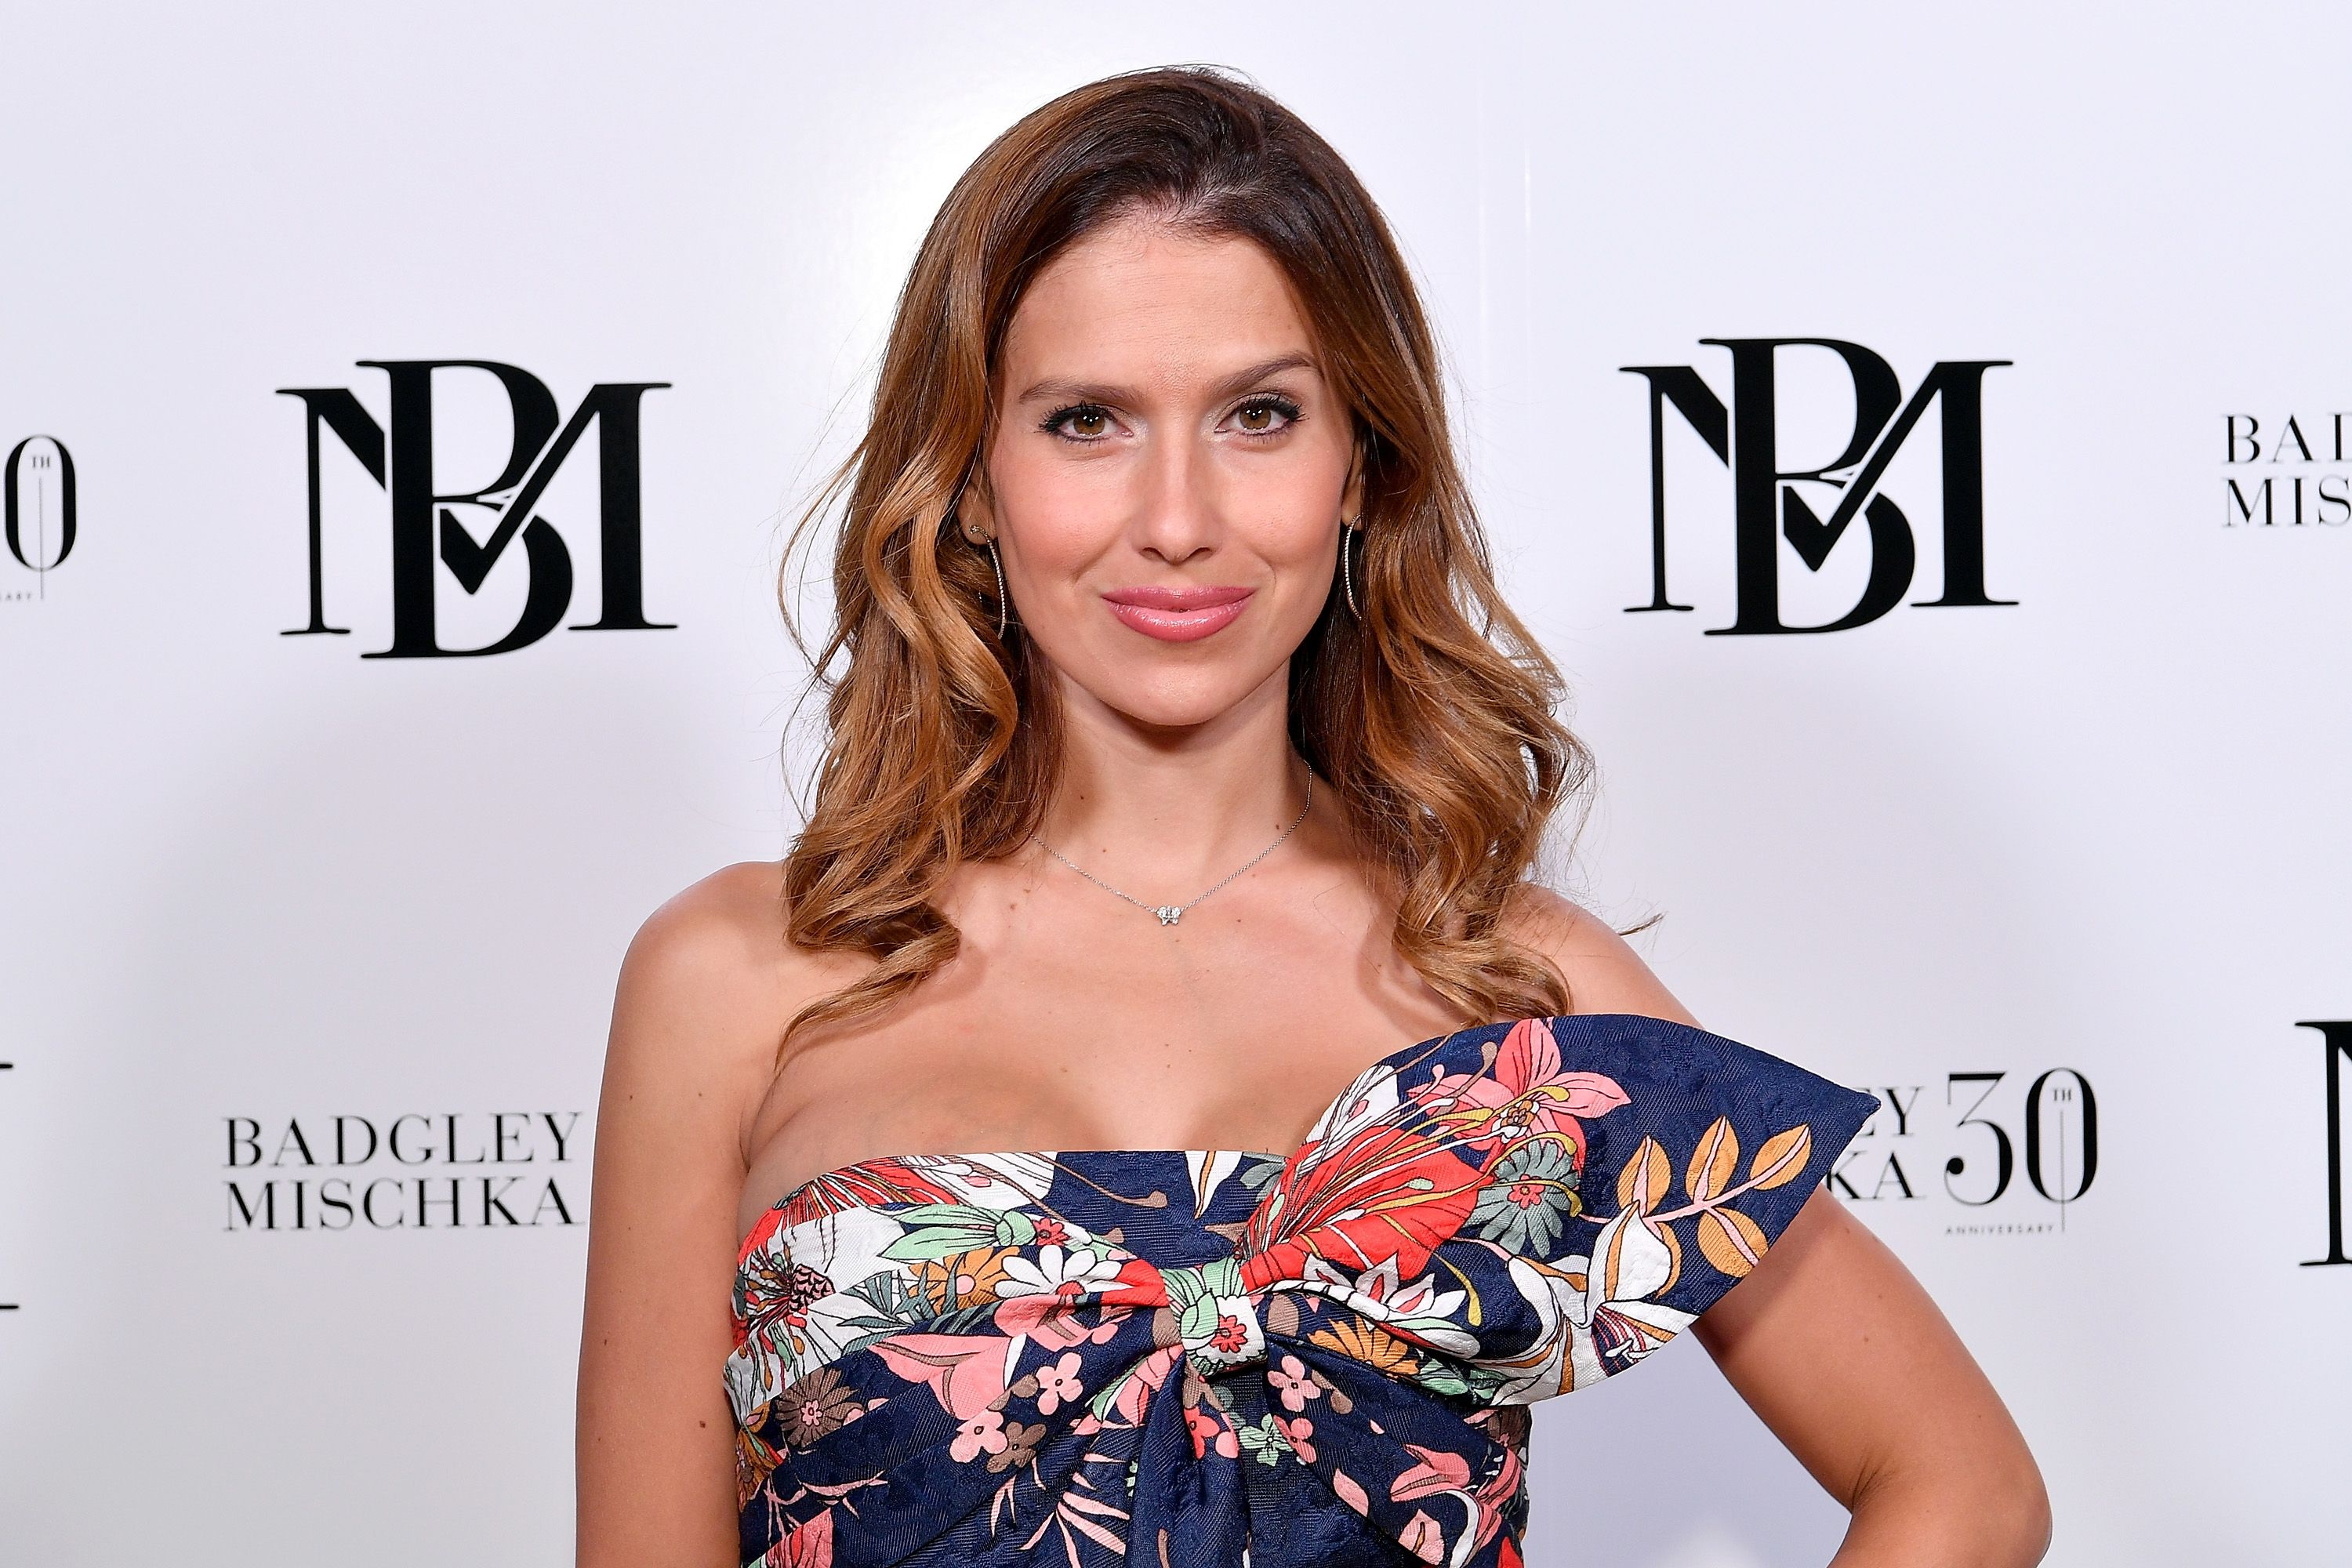 Hilaria Baldwin at the Badgley Mischka show during New York Fashion Week on September 8, 2018 in New York City | Photo: Getty Images